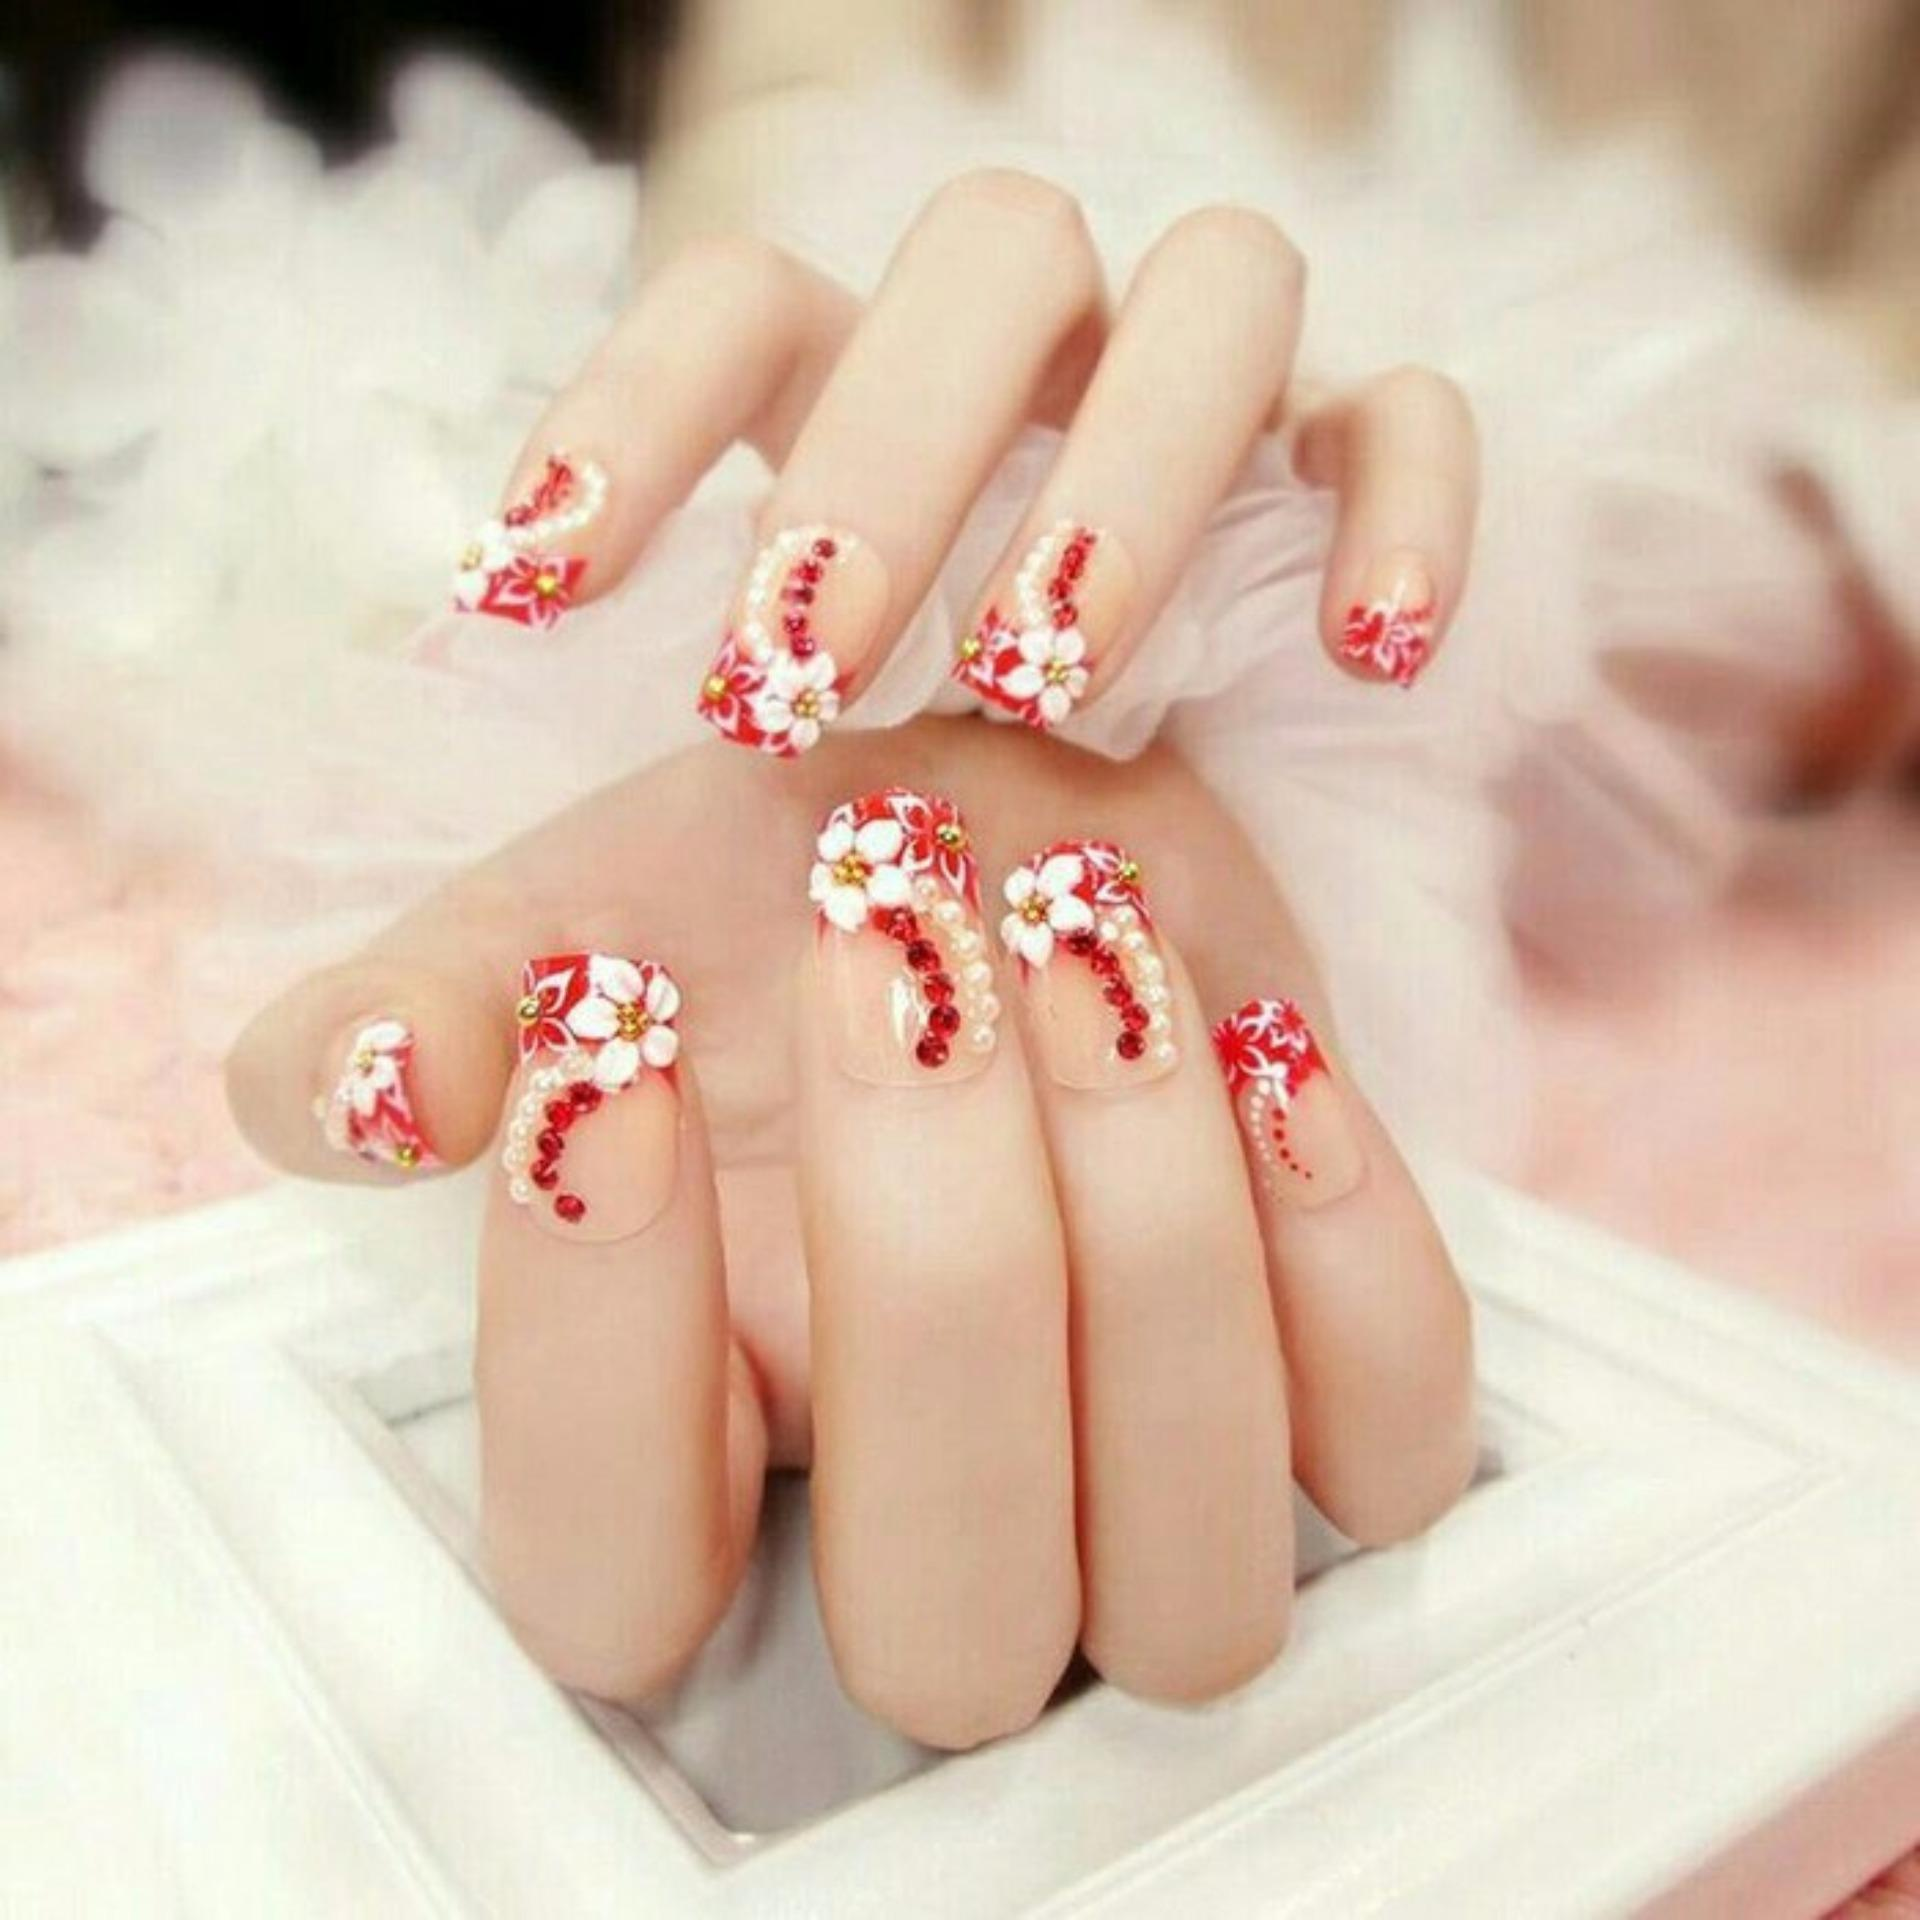 Wedding Party Fake Nail White Half Pearl Kuku Palsu Pernikahan 3d Jbs Nails A49 Nikah False Nailart Red Flower